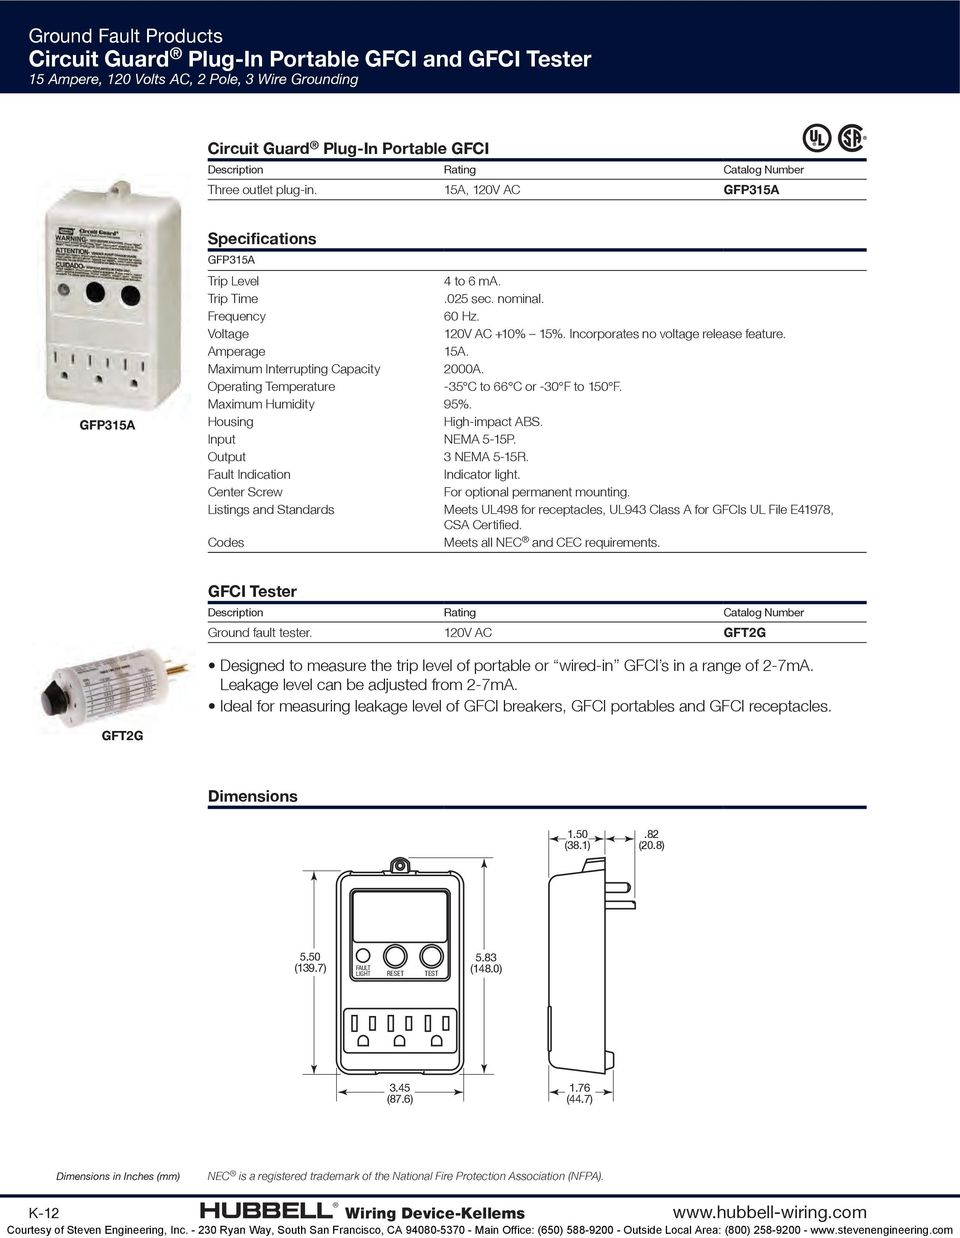 Gfci Receptacle With Led Screw Mount 125 Volt Ac 20 Amp 2pole 3 Ground Fault Products Pdf Indication Center Listings And Standards Codes 4 To 6 Ma025 Sec